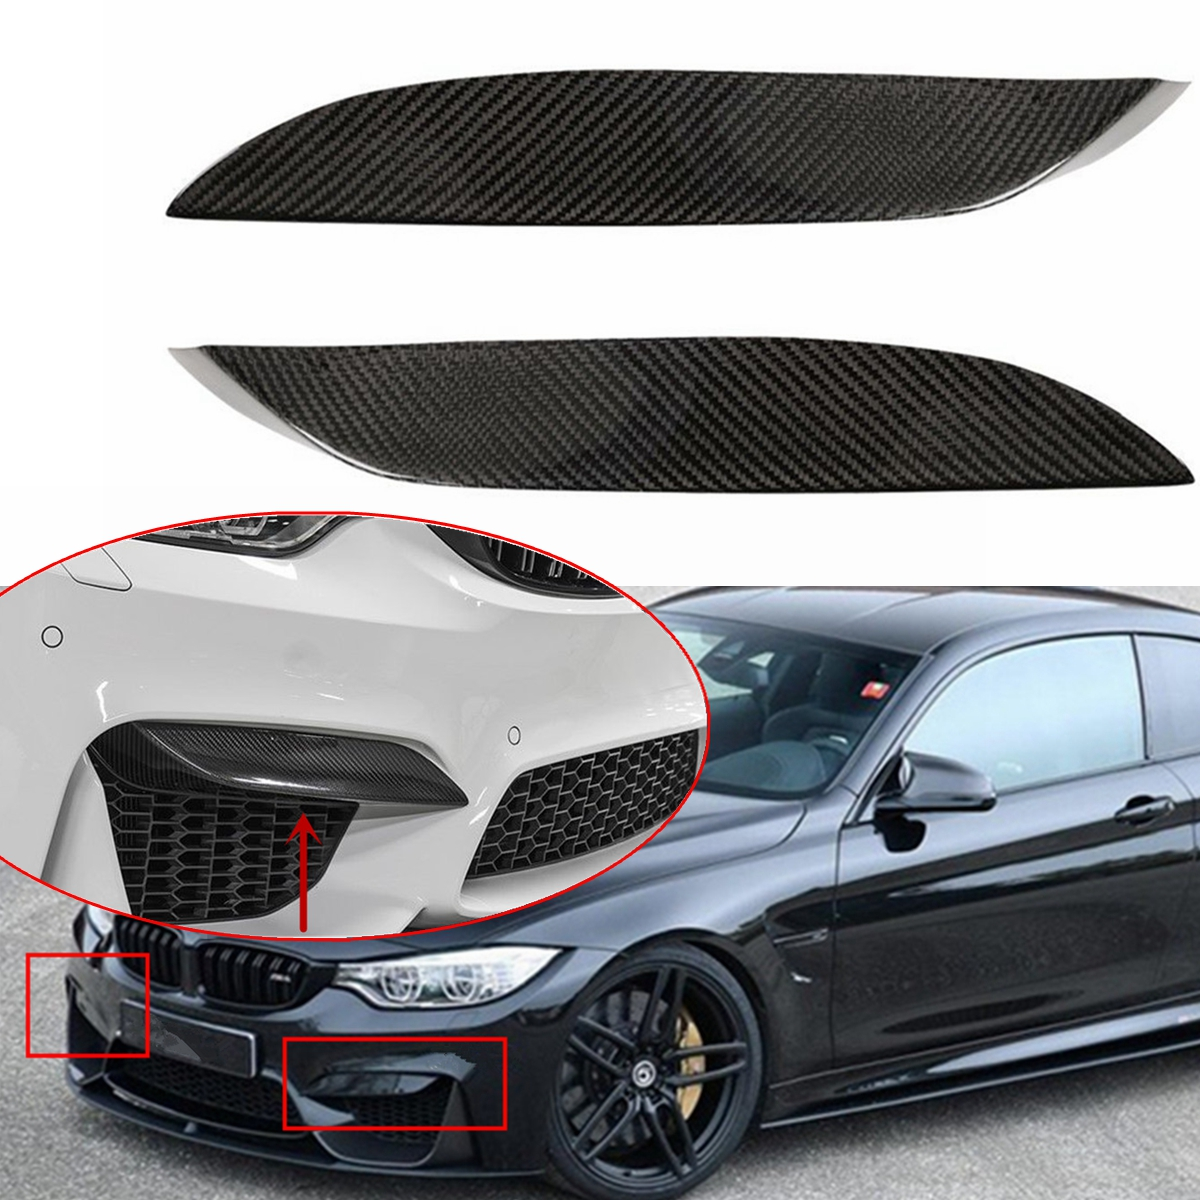 Universal Car Real Carbon Fiber Front Bumper Fins Decoration Canards Splitters Trims For BMW F80 M3 CF Bumper Lip Protector universal car styling carbon fiber auto front bumper trim decoration fit any car